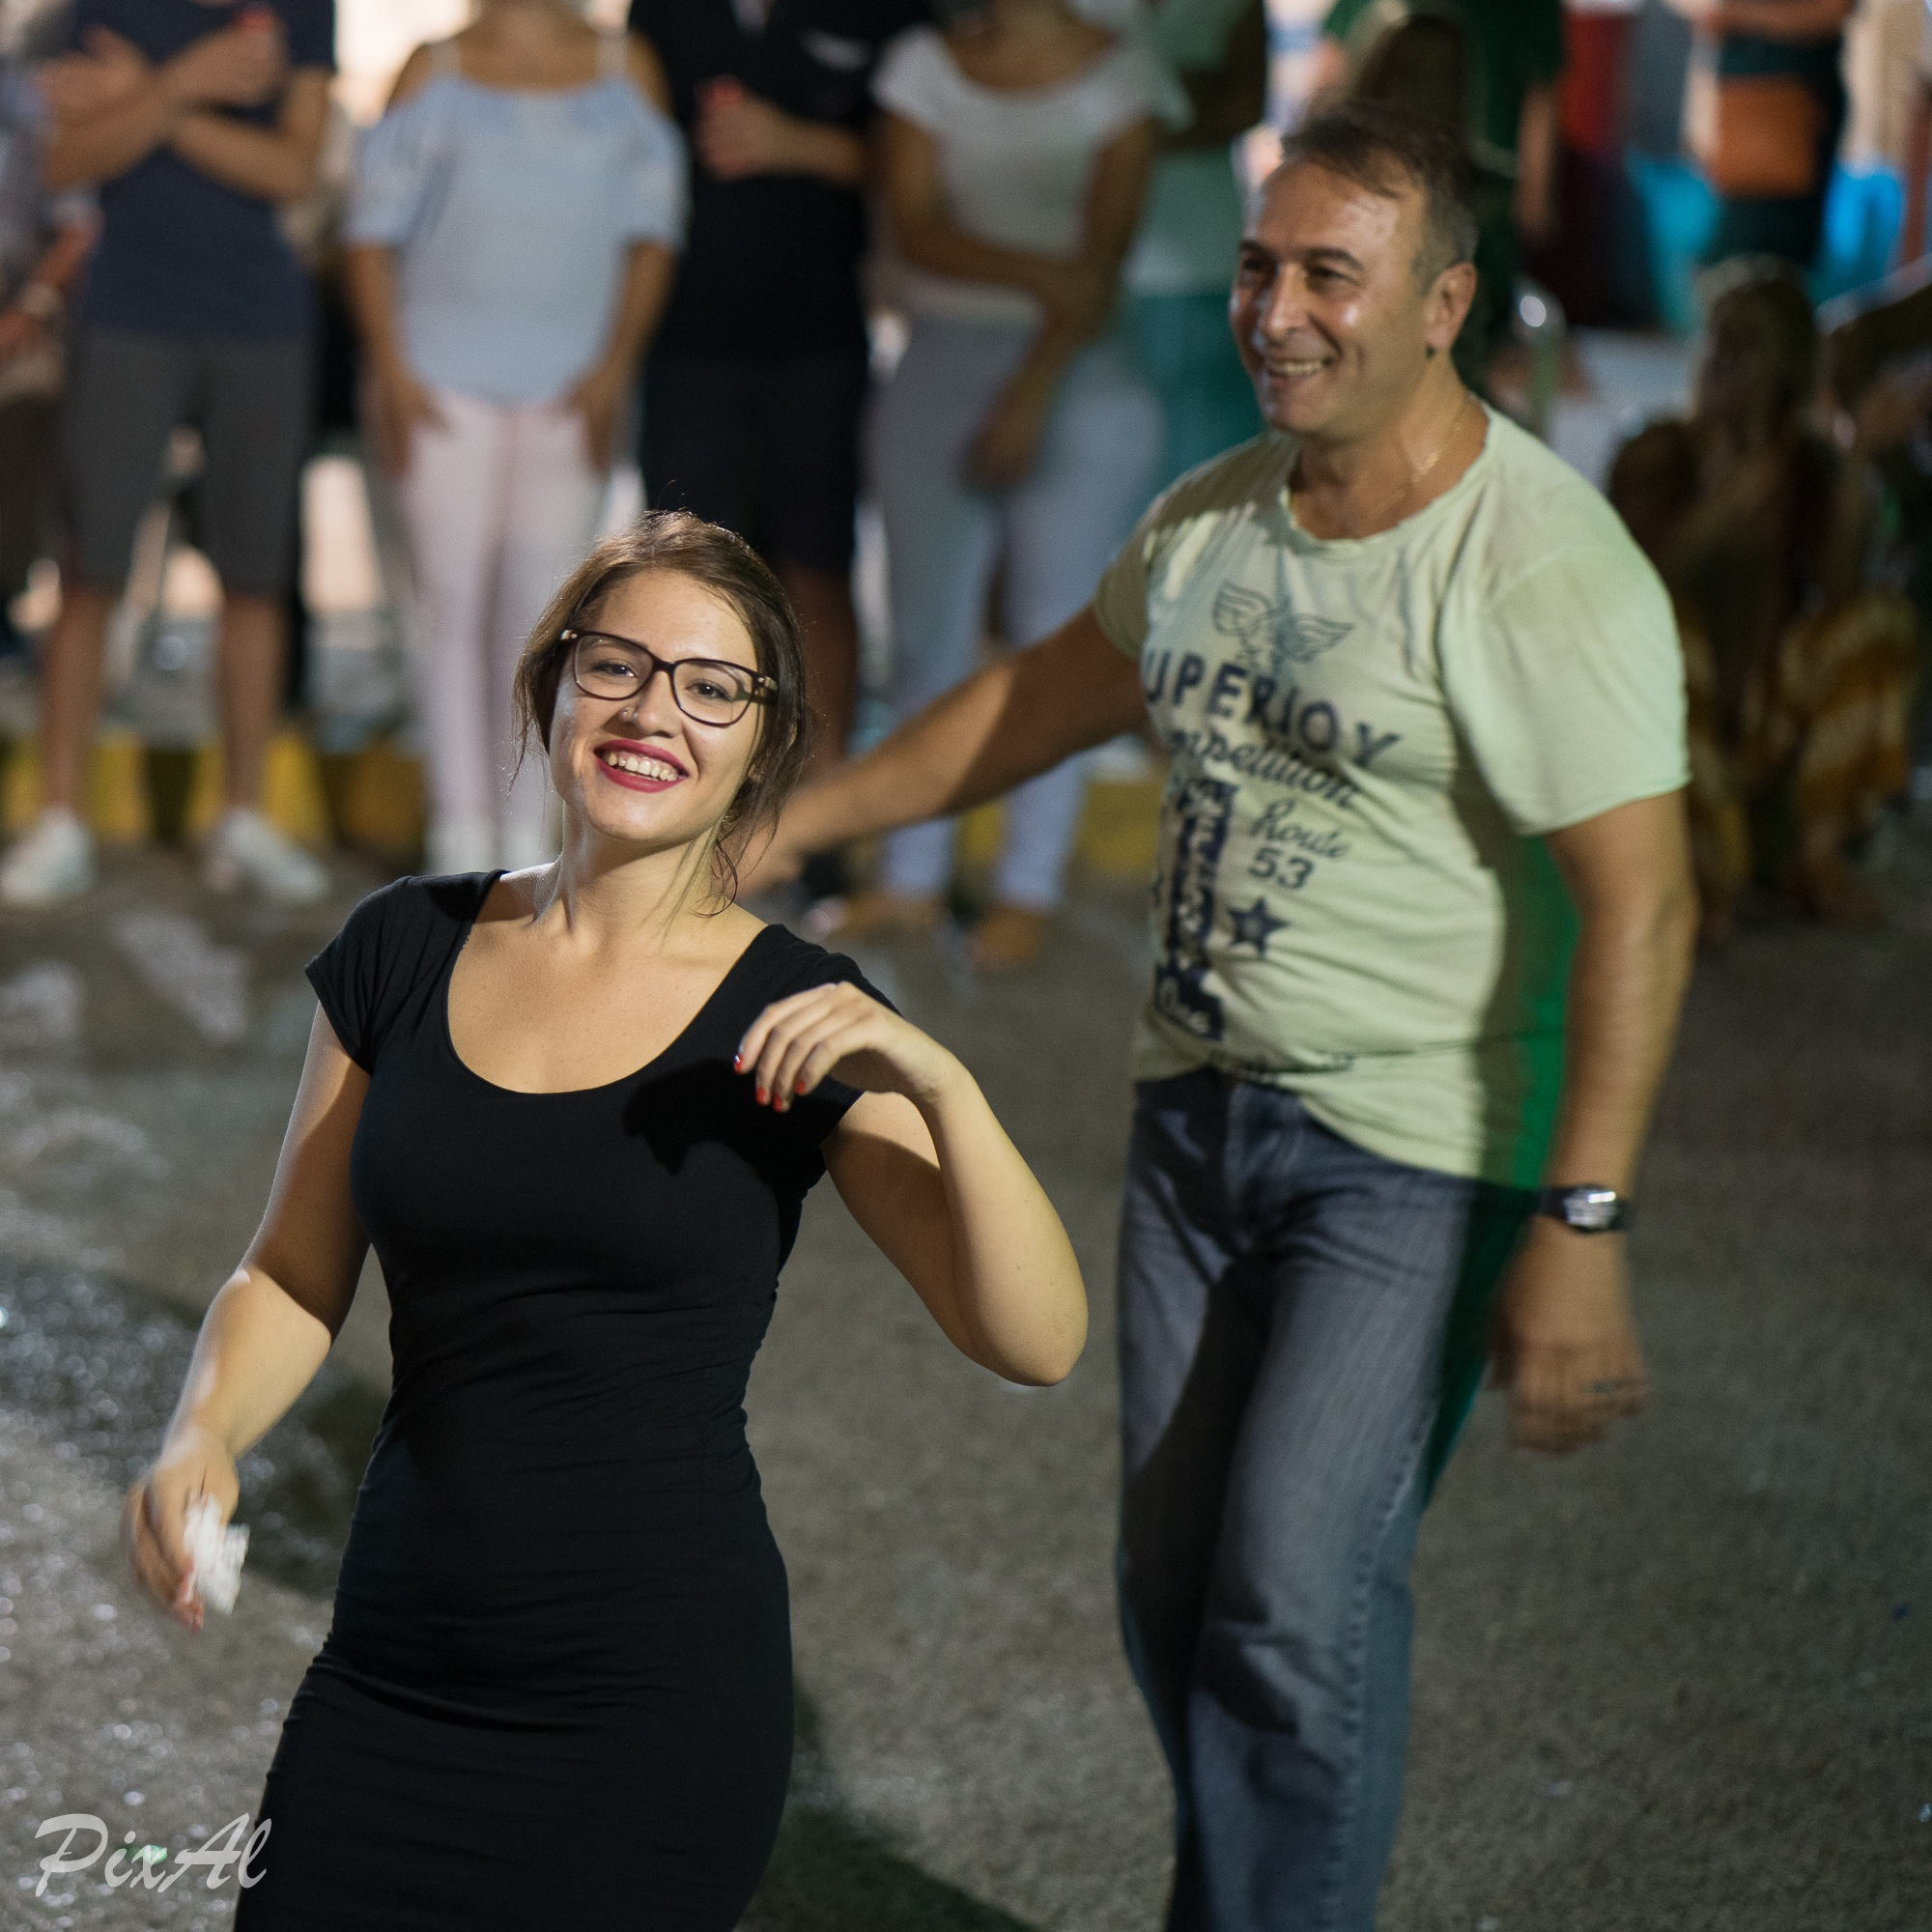 Dancing All Night by PixAl Photography